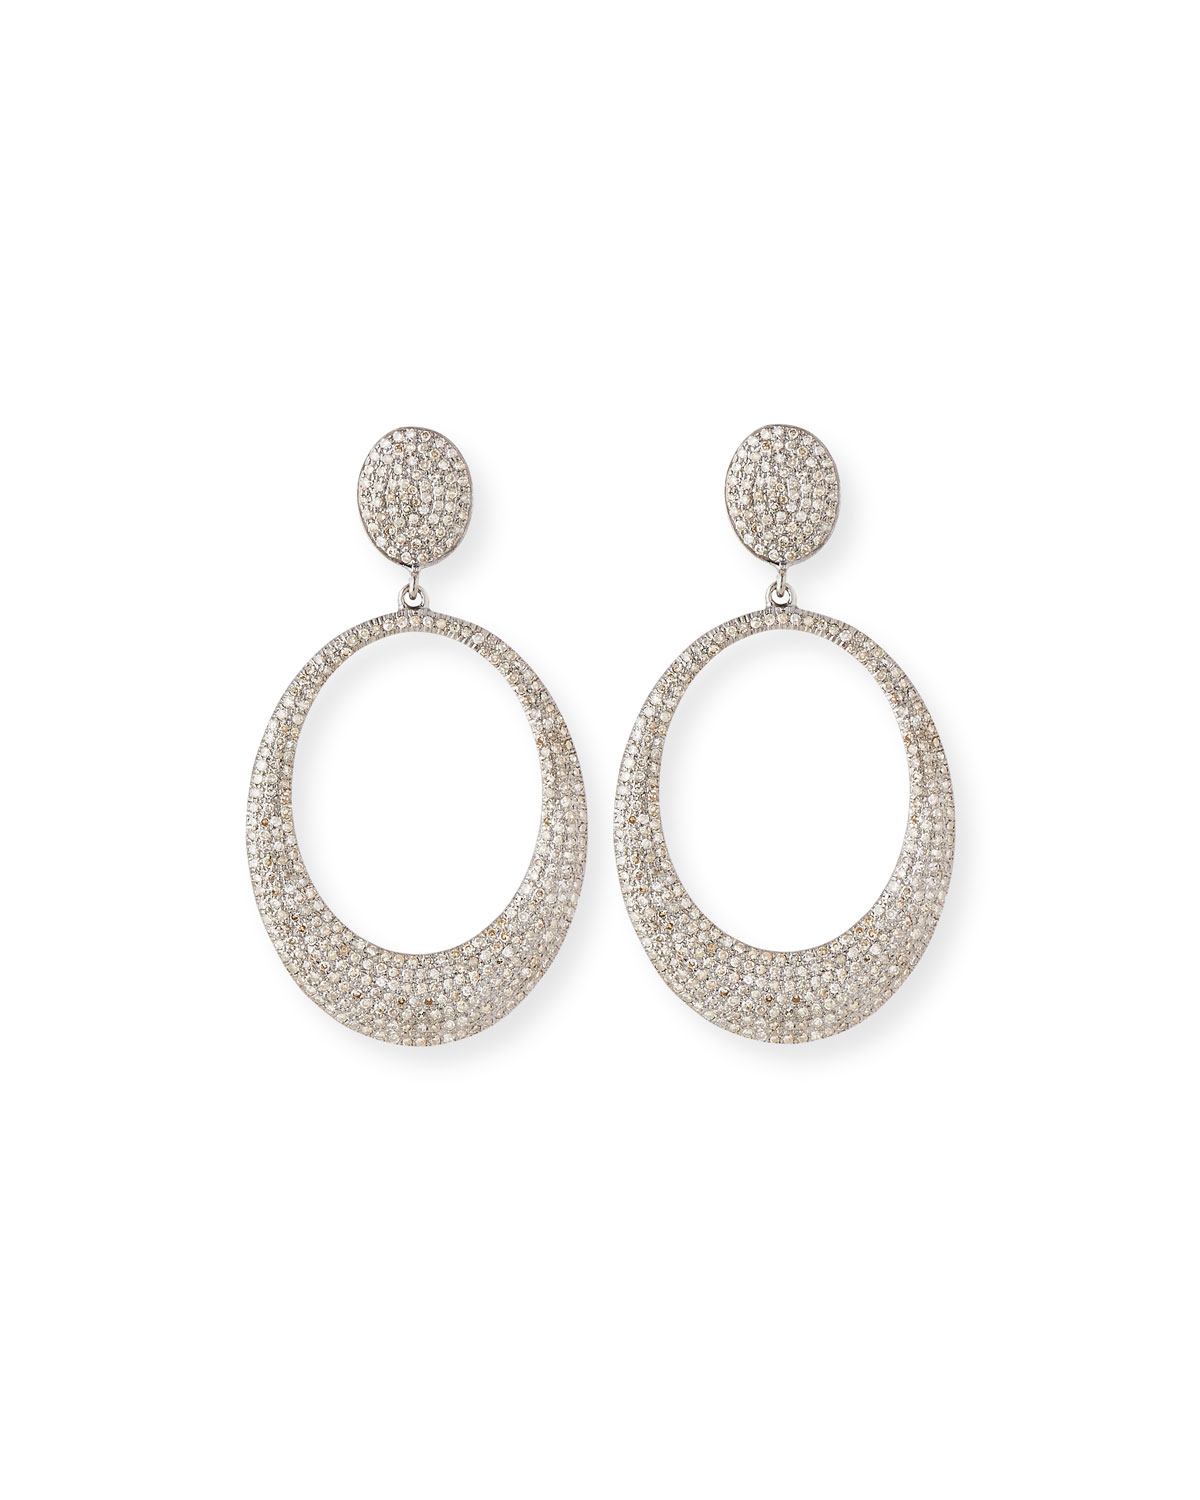 Pavé Diamond Doorknocker Hoop Earrings